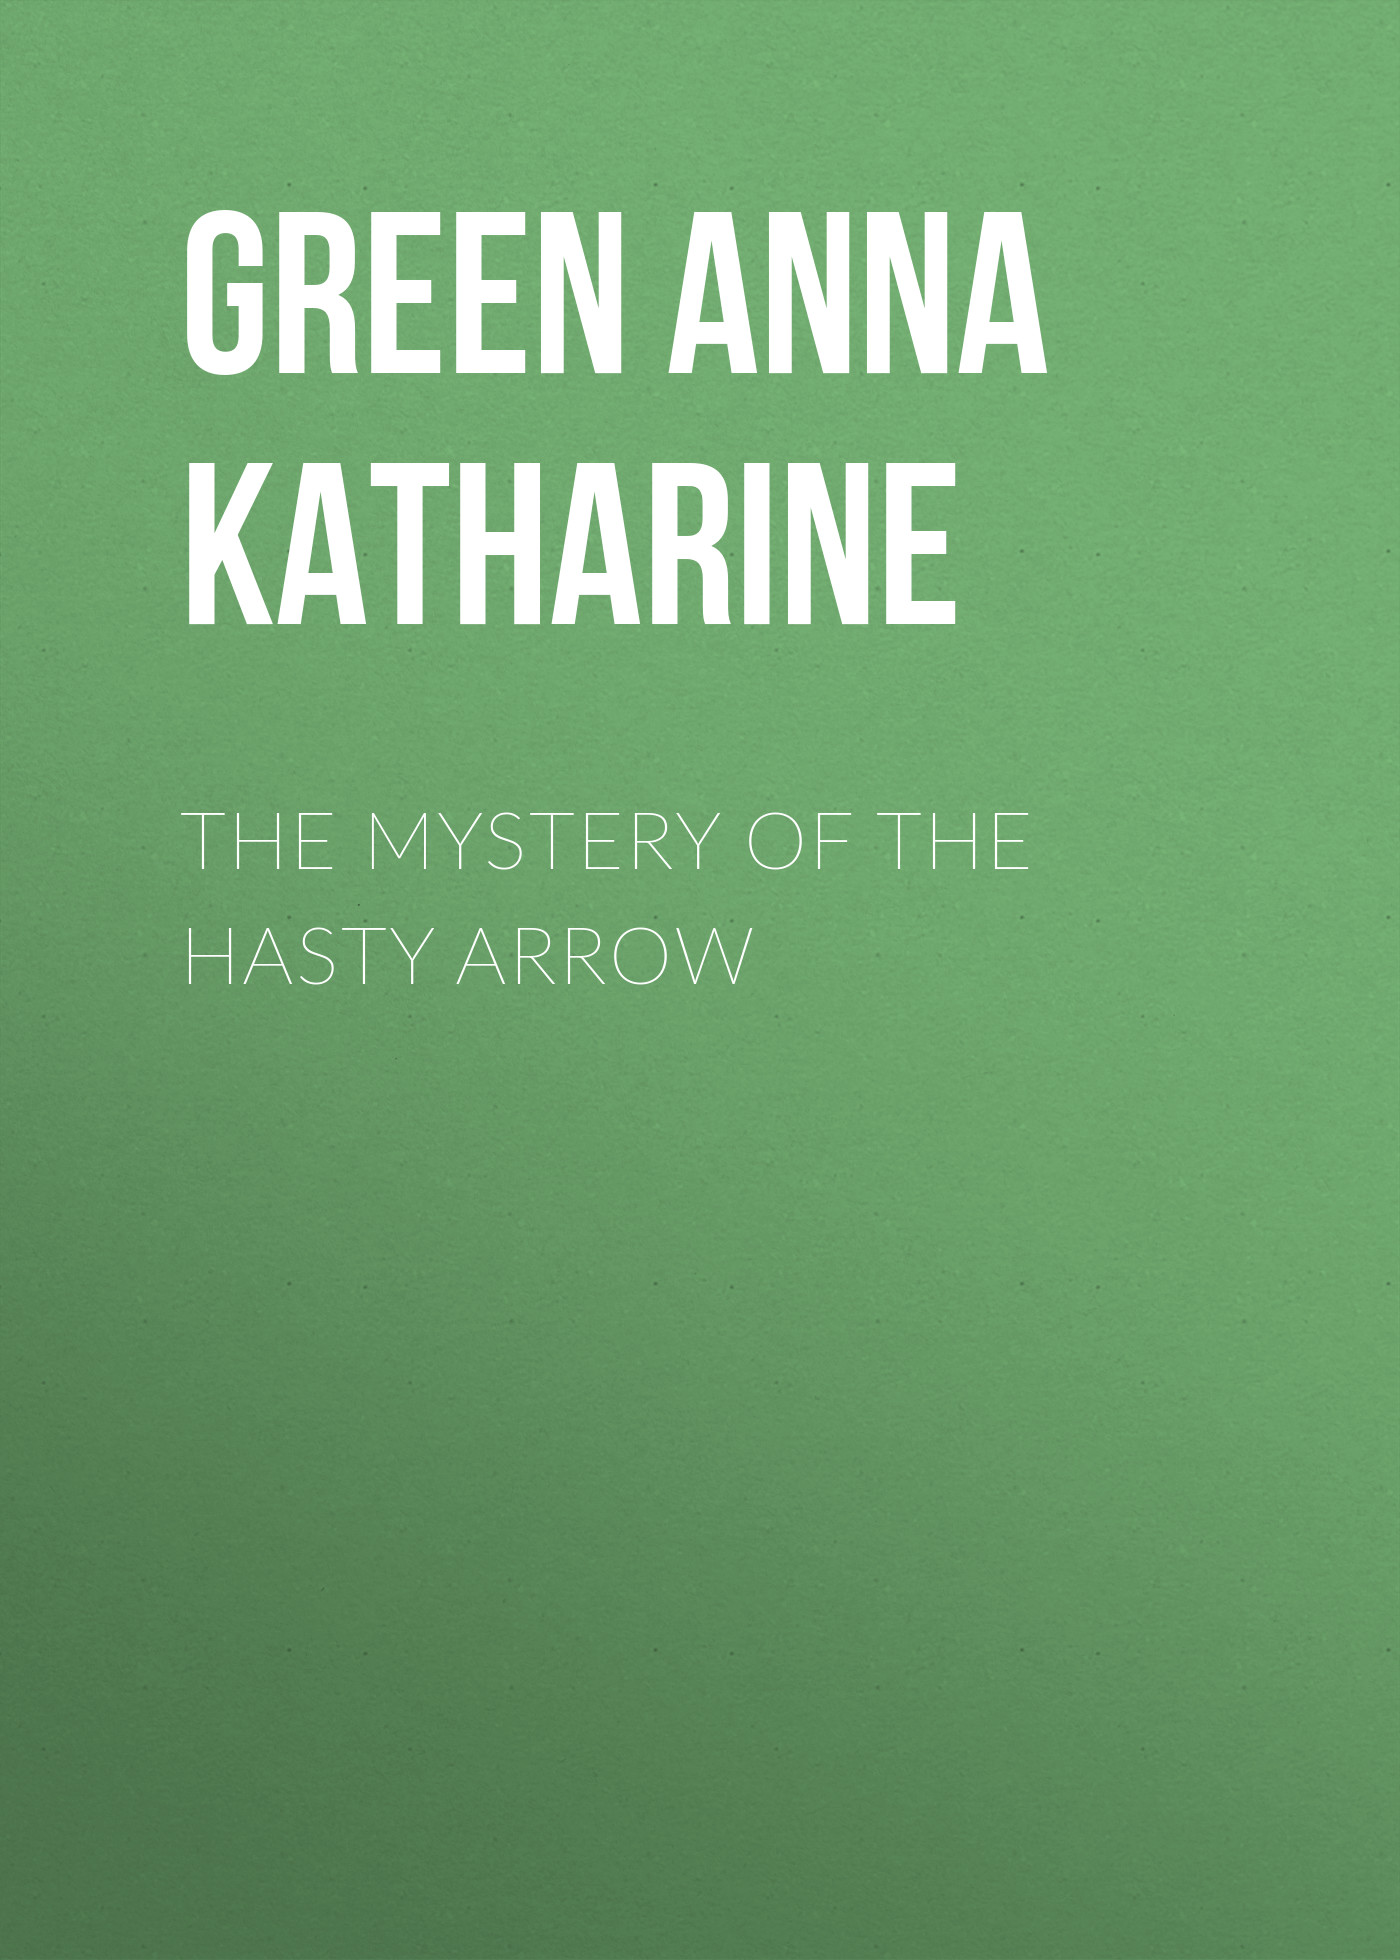 Green Anna Katharine The Mystery of the Hasty Arrow